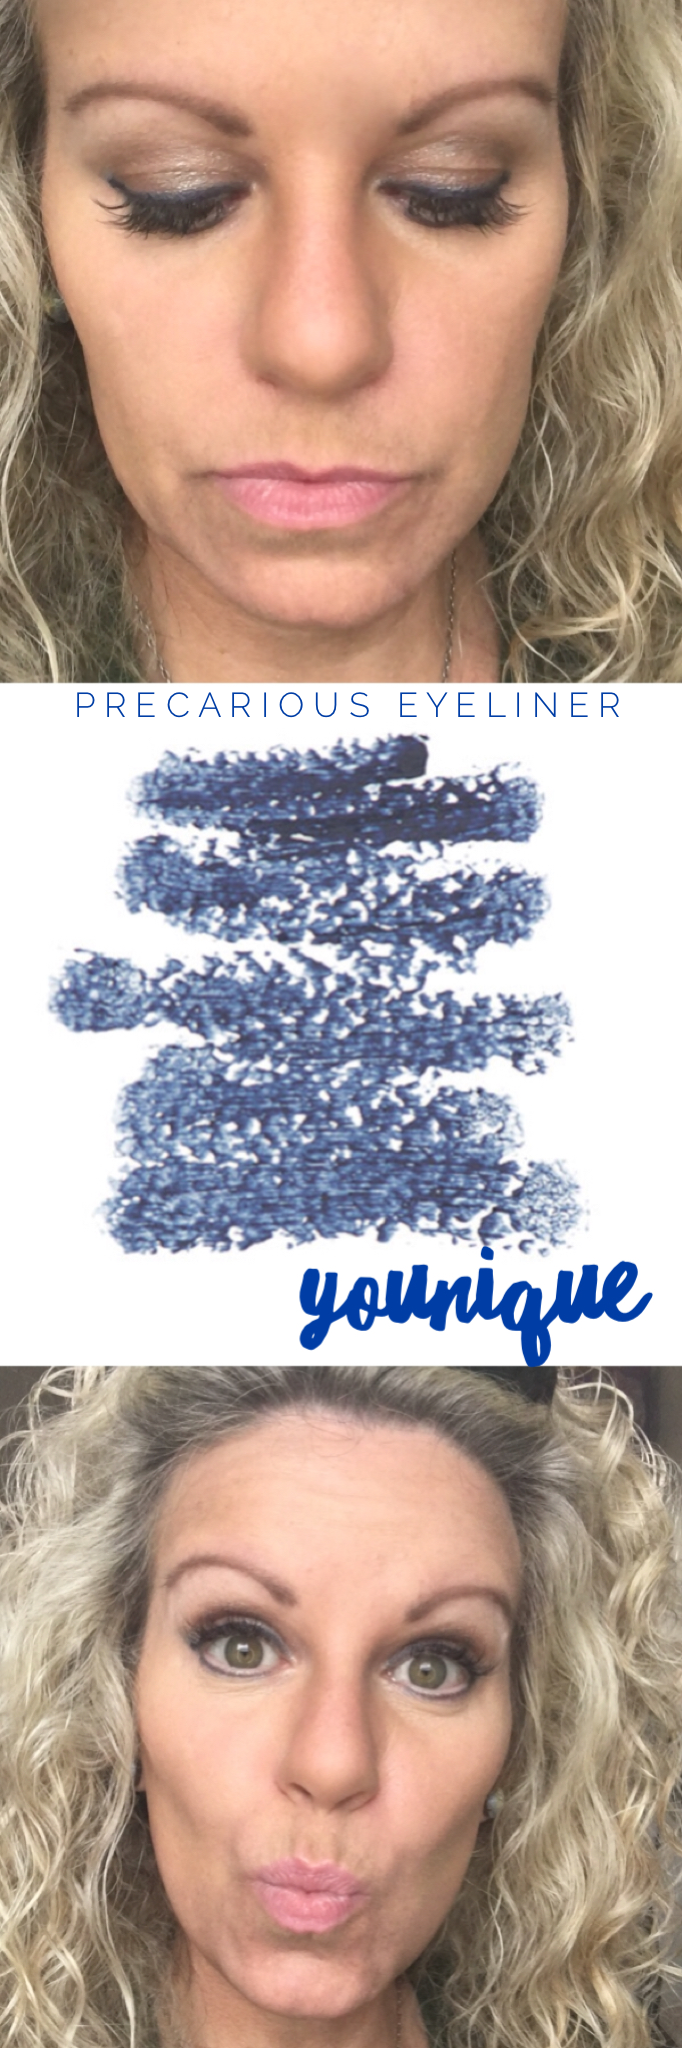 Younique blue eye liner